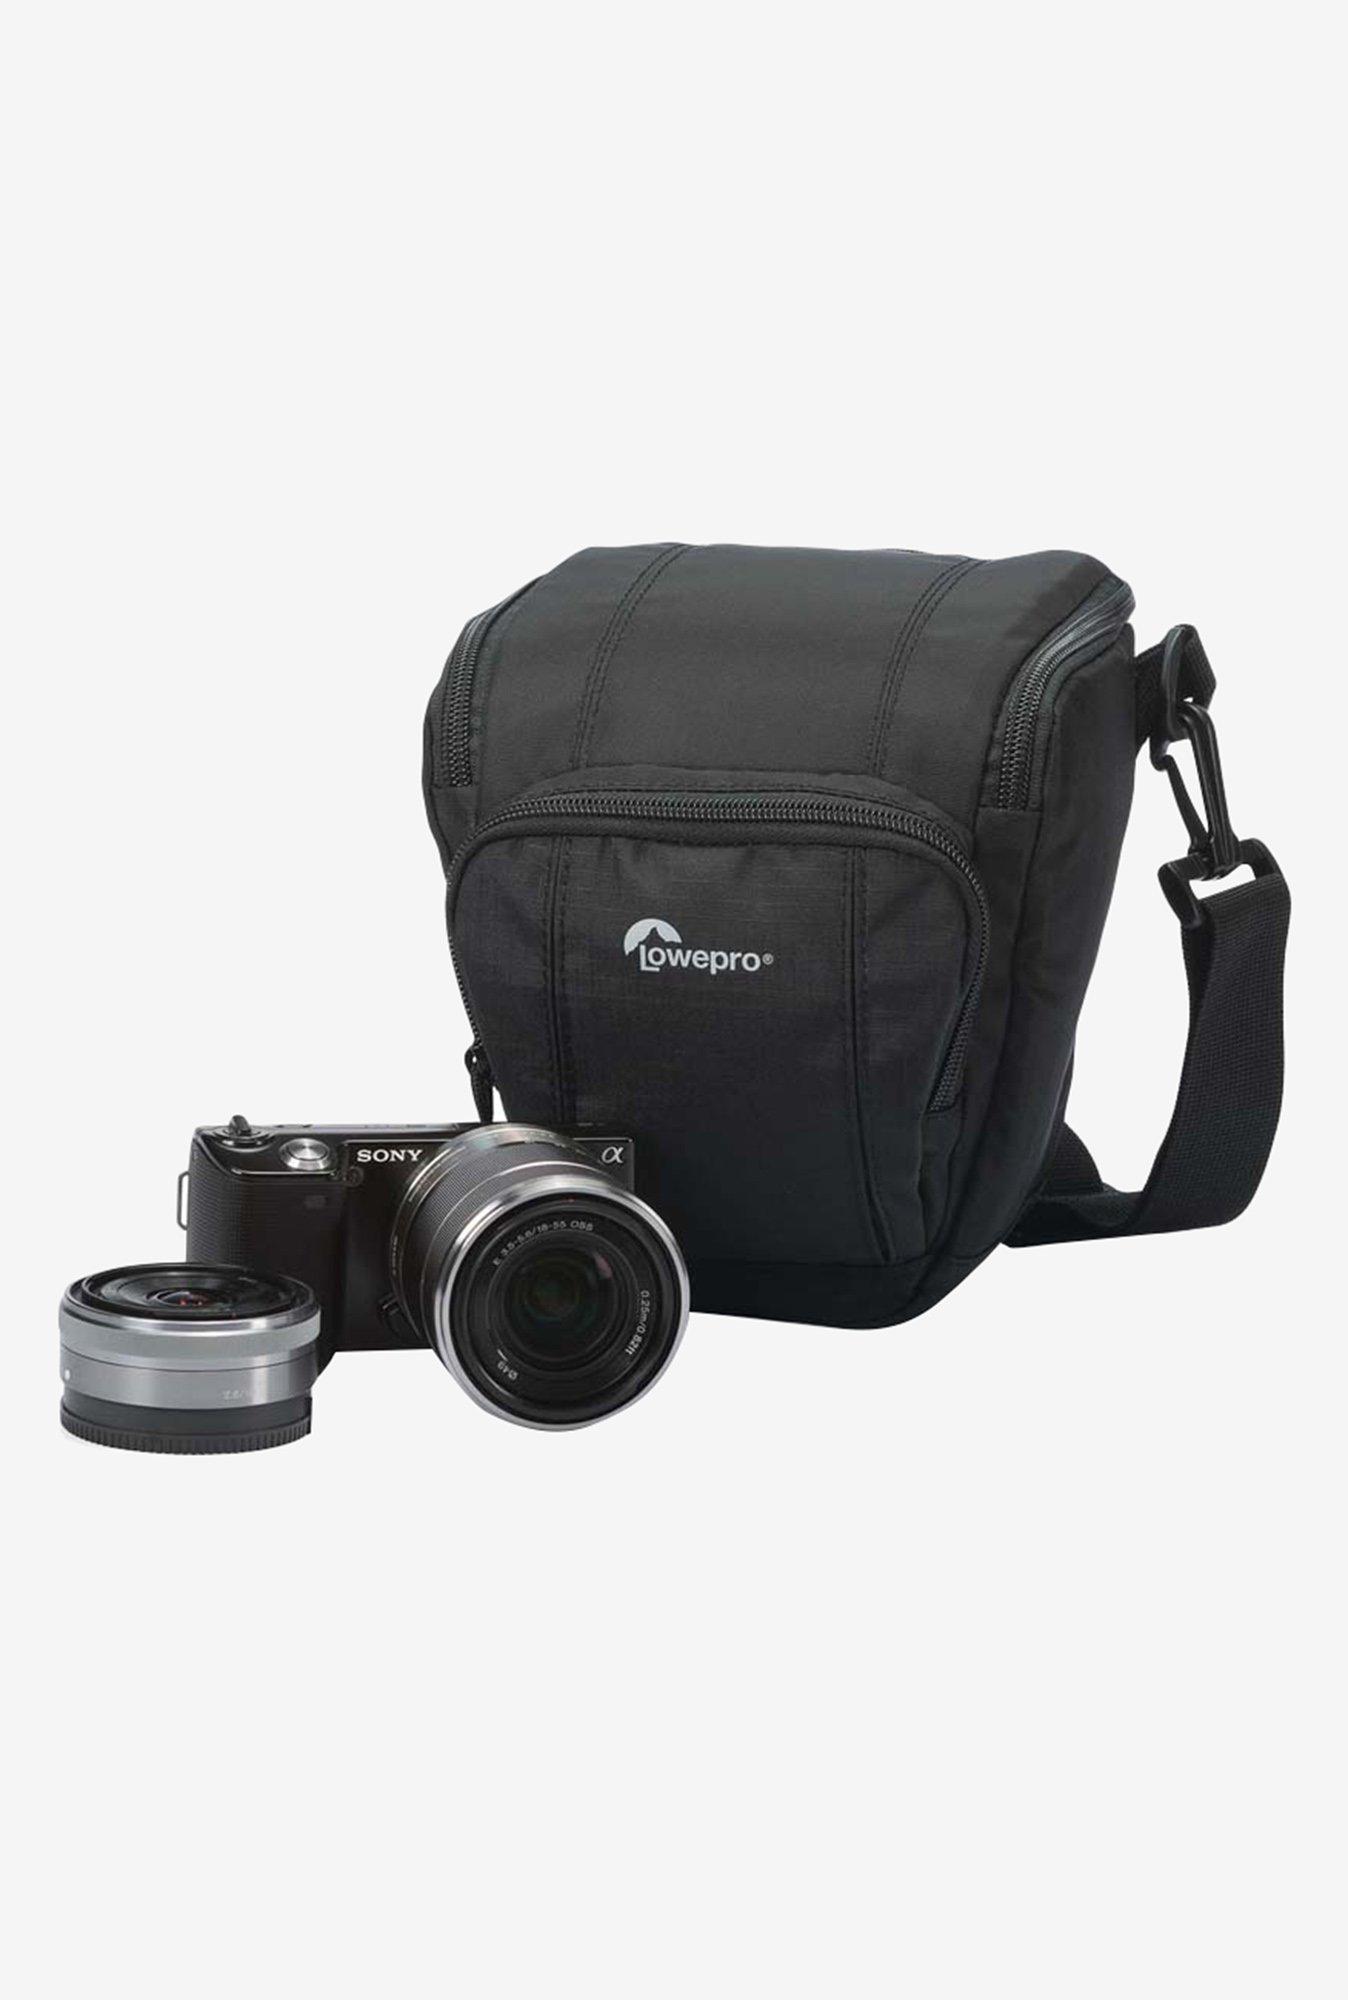 LowePro Top Loader Zoom TM 45 AW II Camera Bag Black